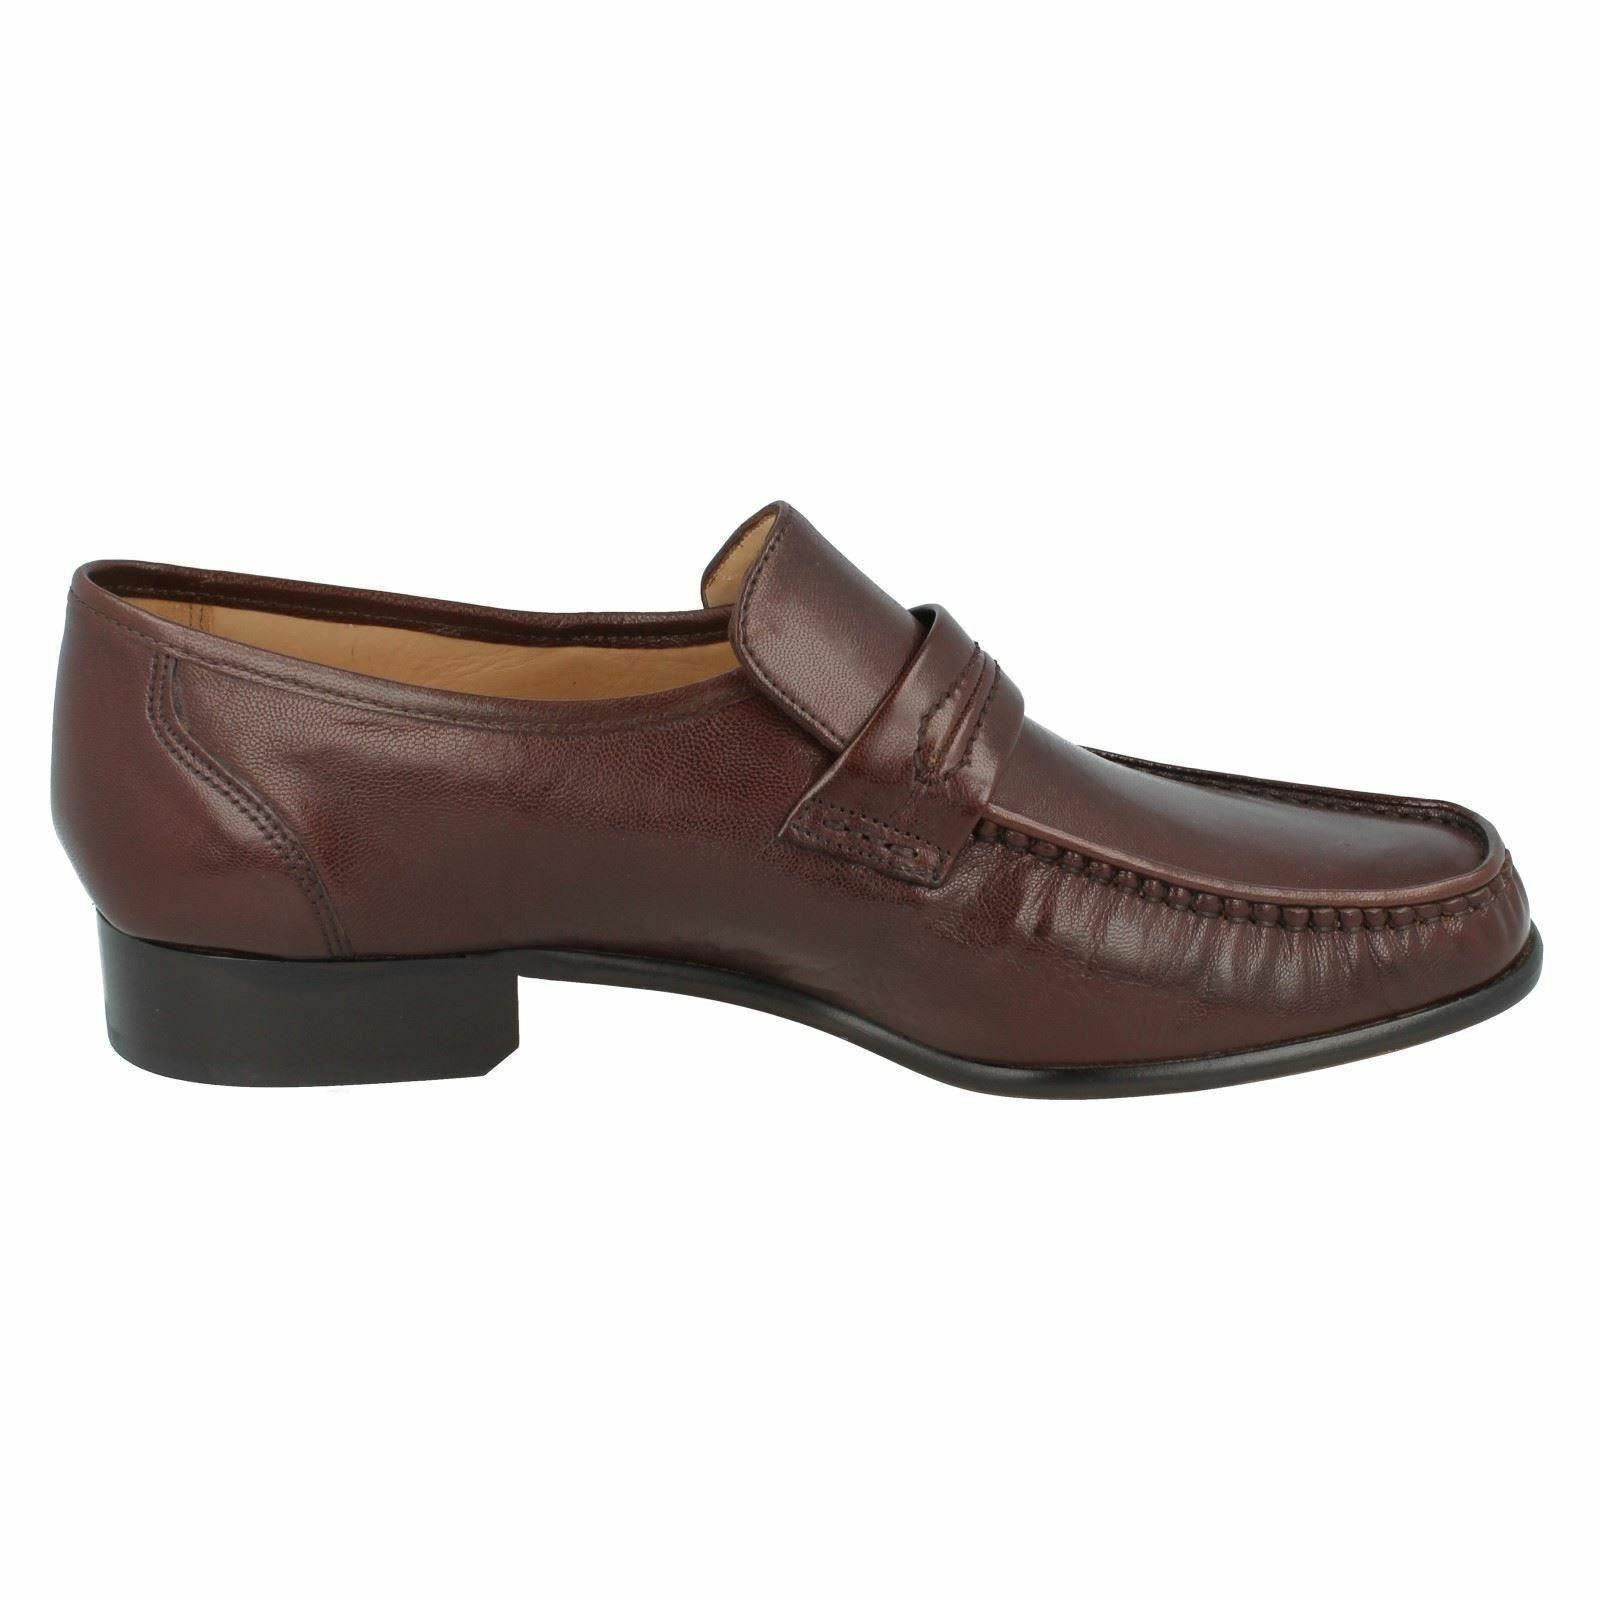 MENS GRENSON SLIP ON FORMAL BLACK LEATHER MOCCASIN STYLE FORMAL ON Schuhe WATFORD G FITTING 2f5639